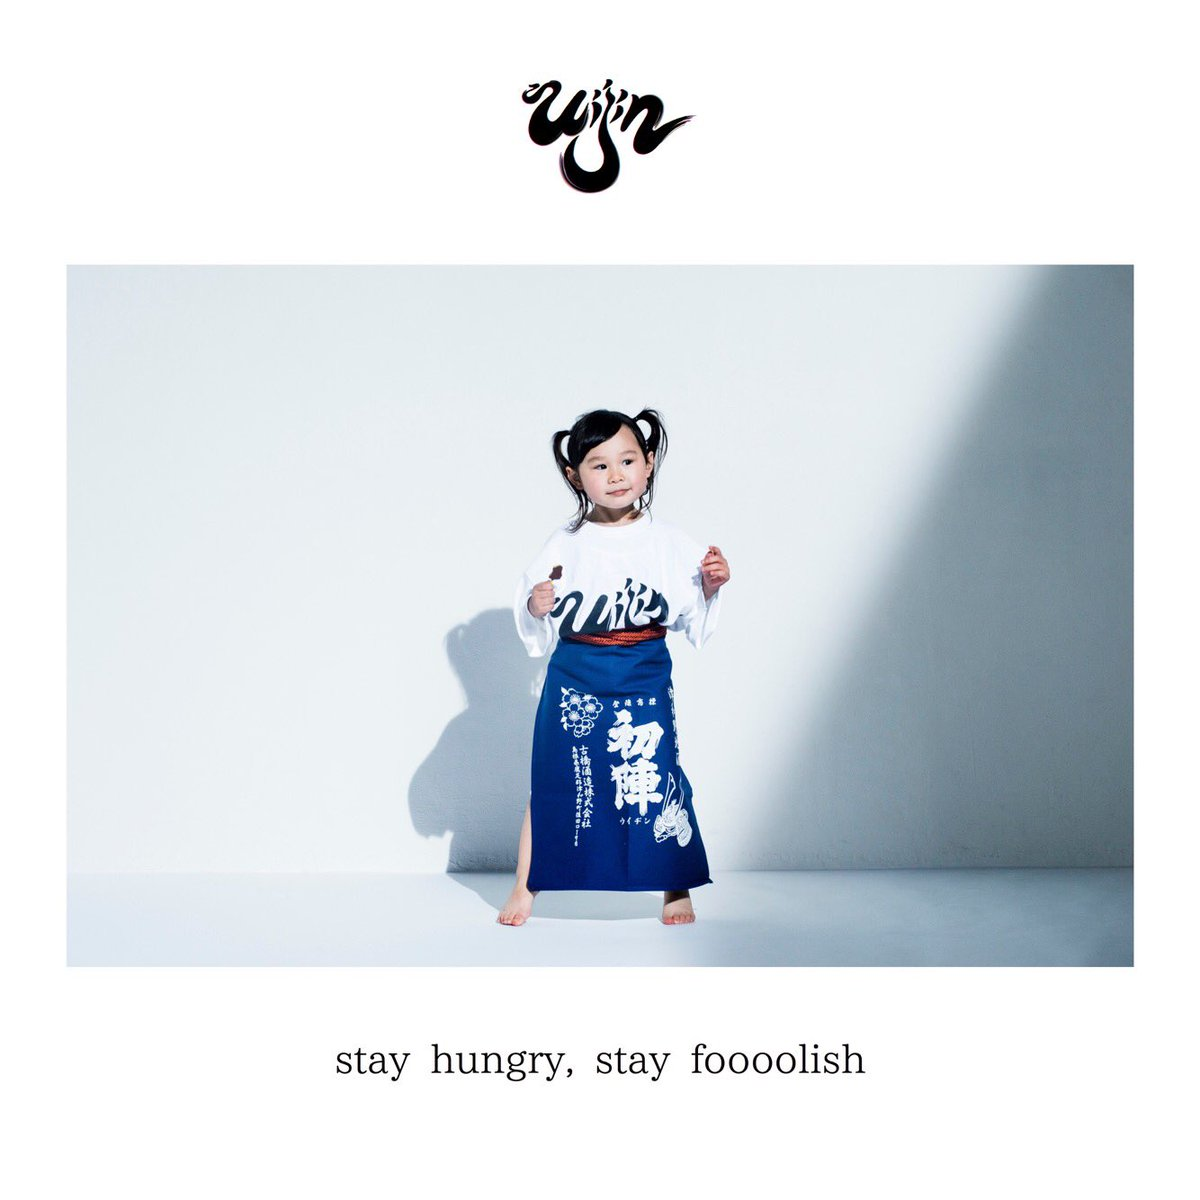 uijin 1st album release party –stay hungry, stay foooolish-